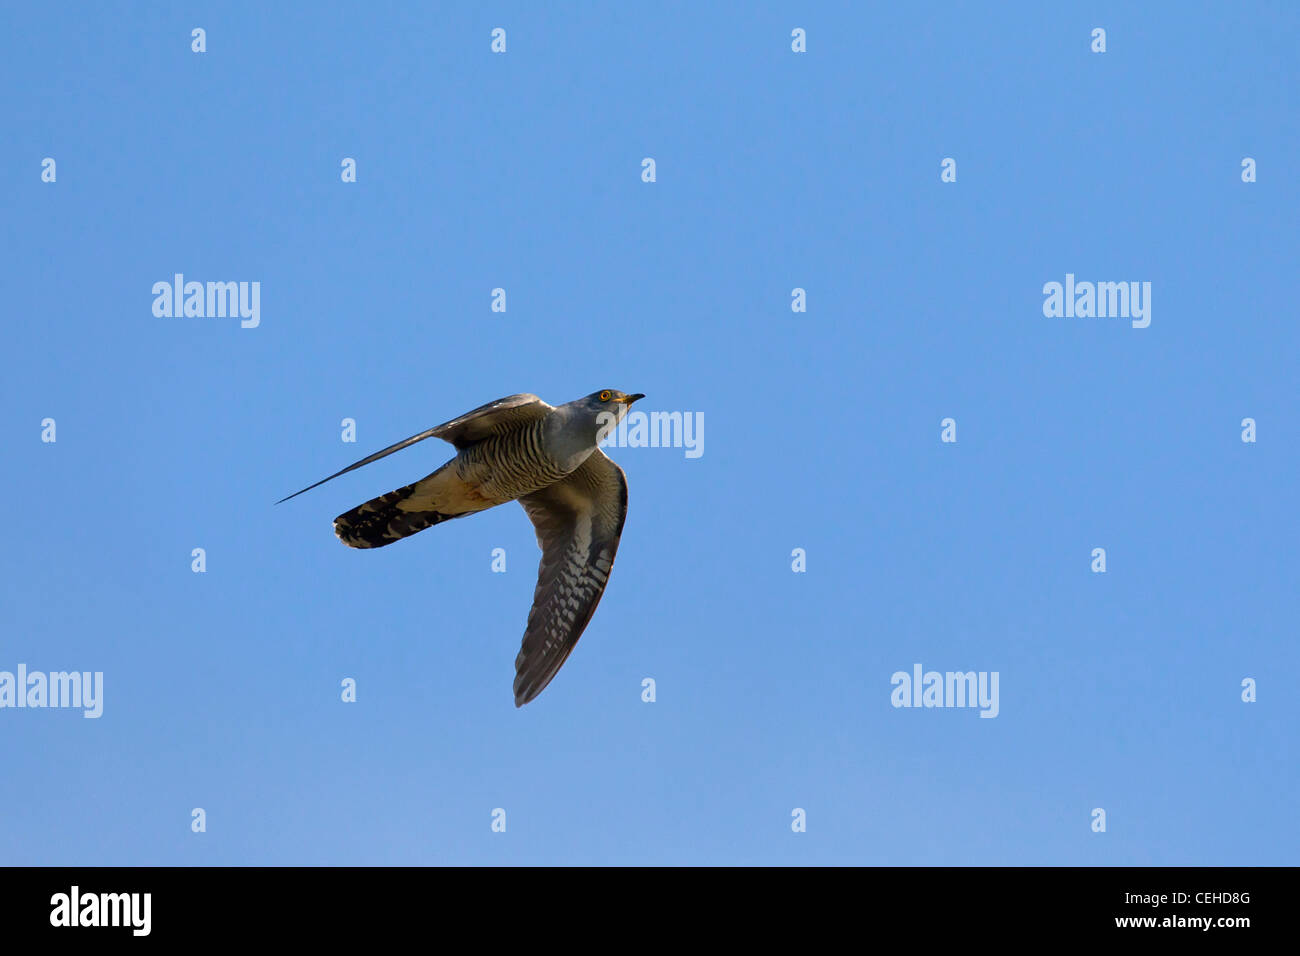 Common Cuckoo (Cuculus canorus) in flight, Germany Stock Photo